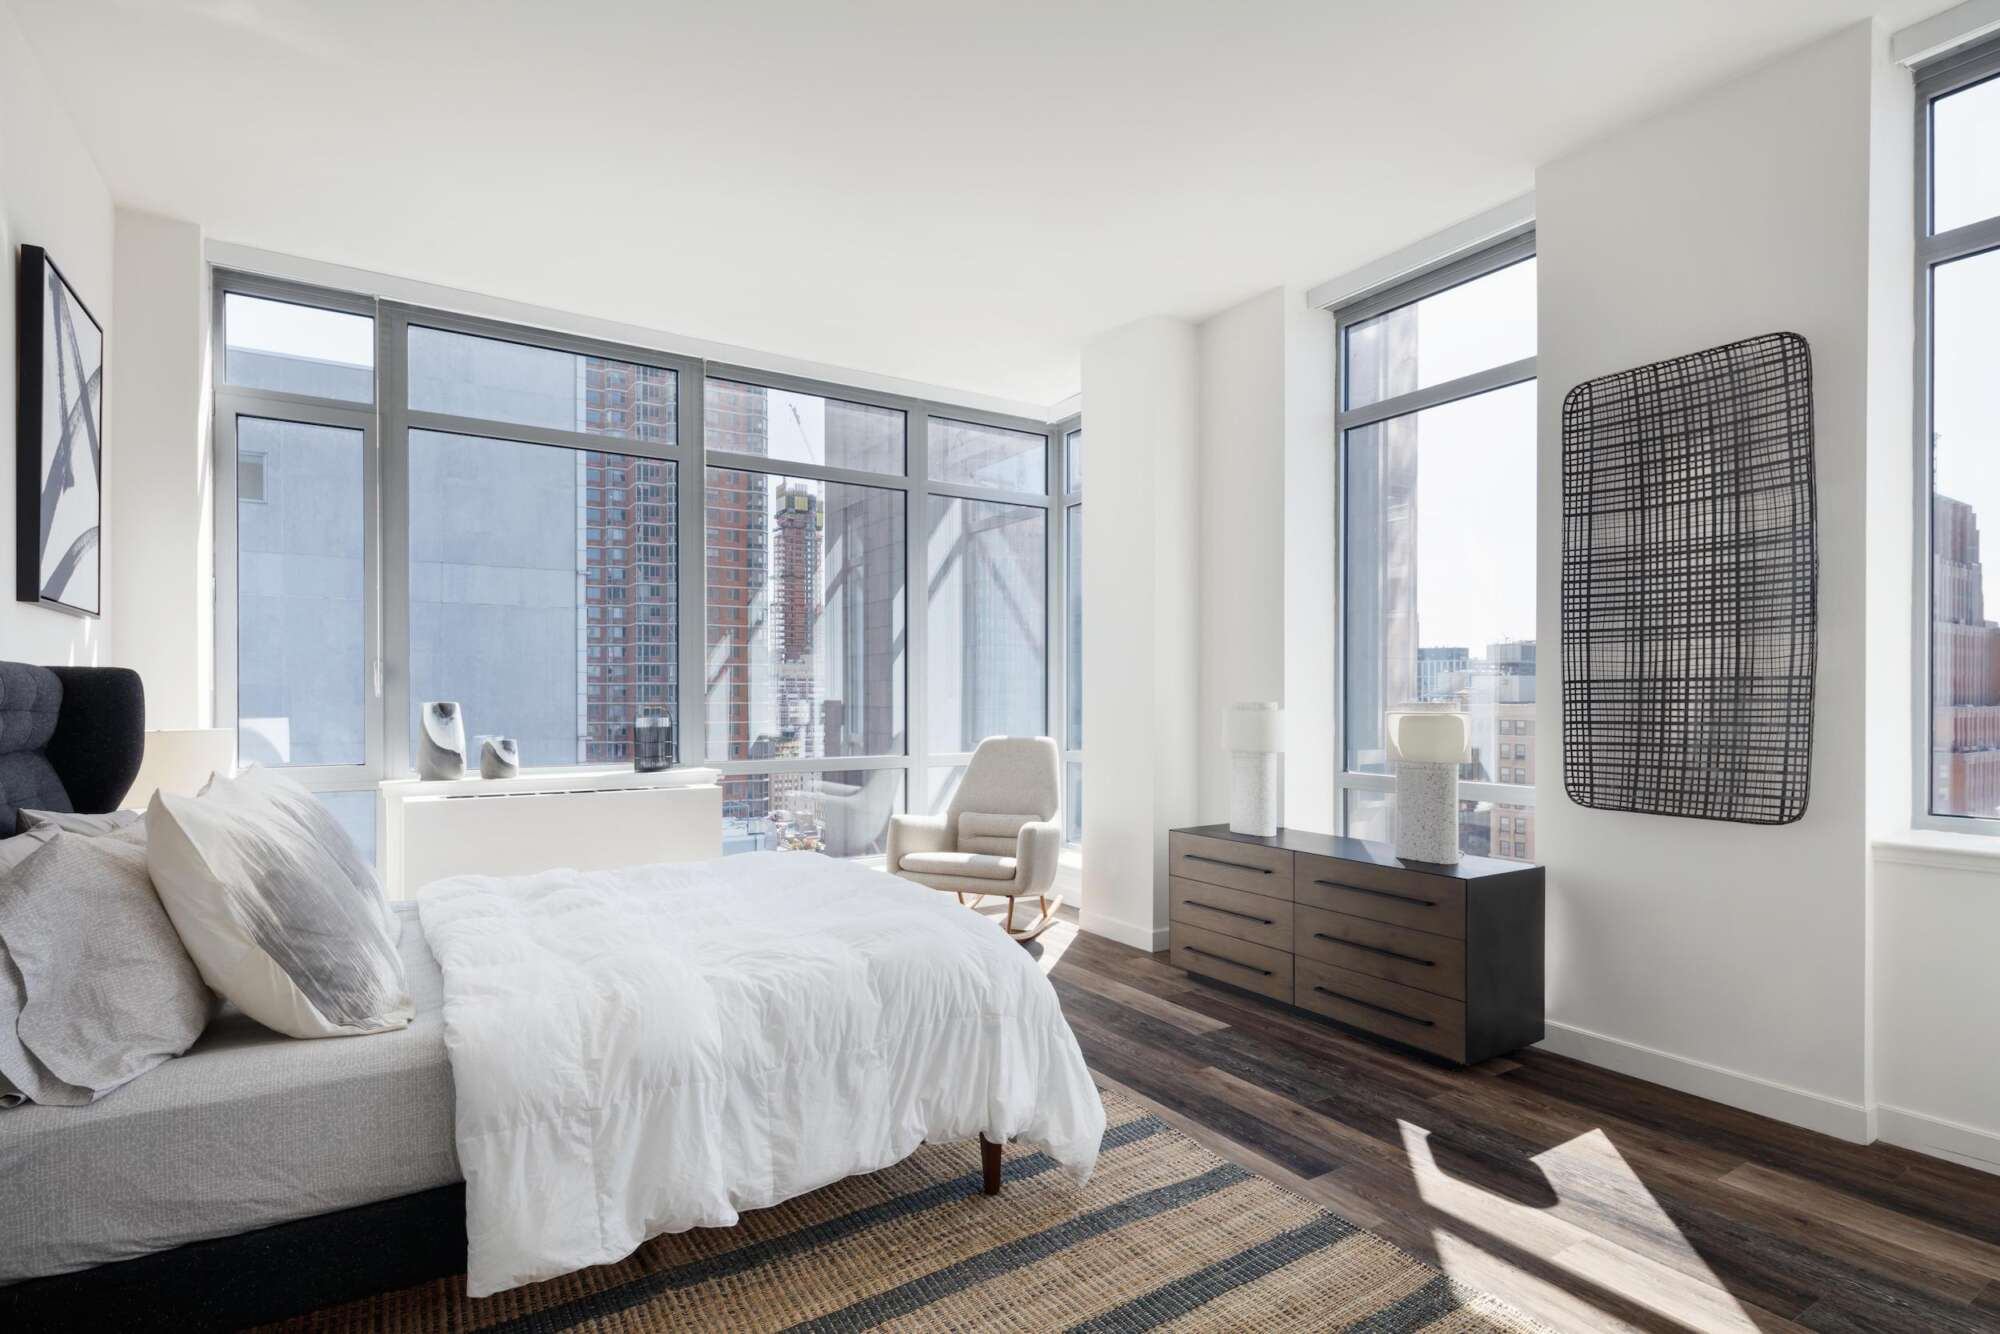 Apartment bedroom with bed, chest of drawers, and chair, with high rise buildings visible outside the windows